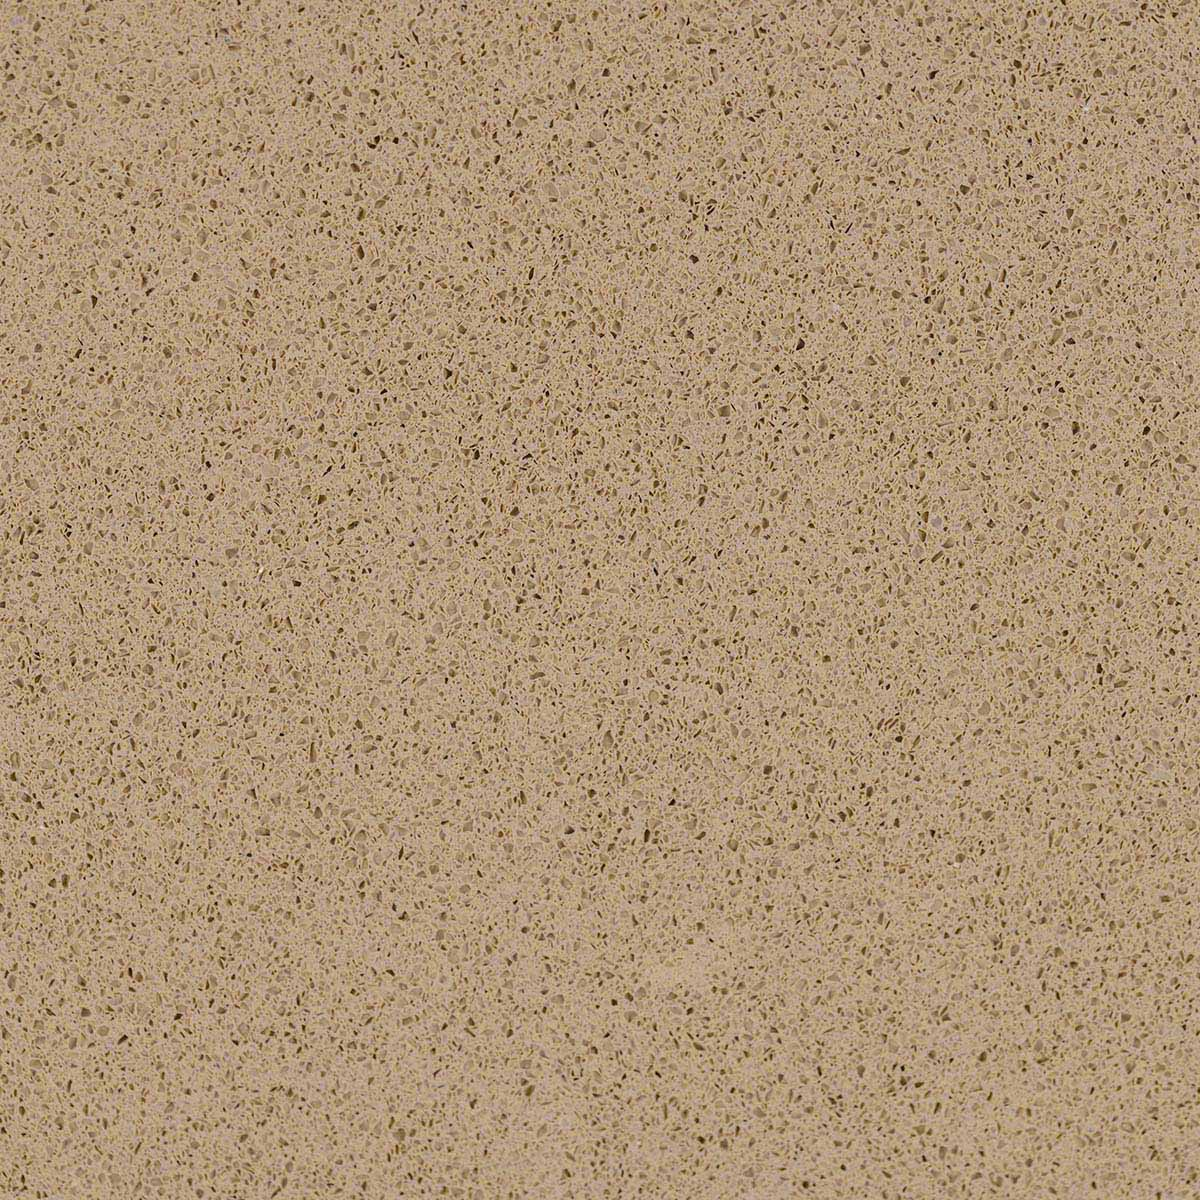 Taupe Quartz Countertop Quartz Colors Keystone Granite Inc Oregon